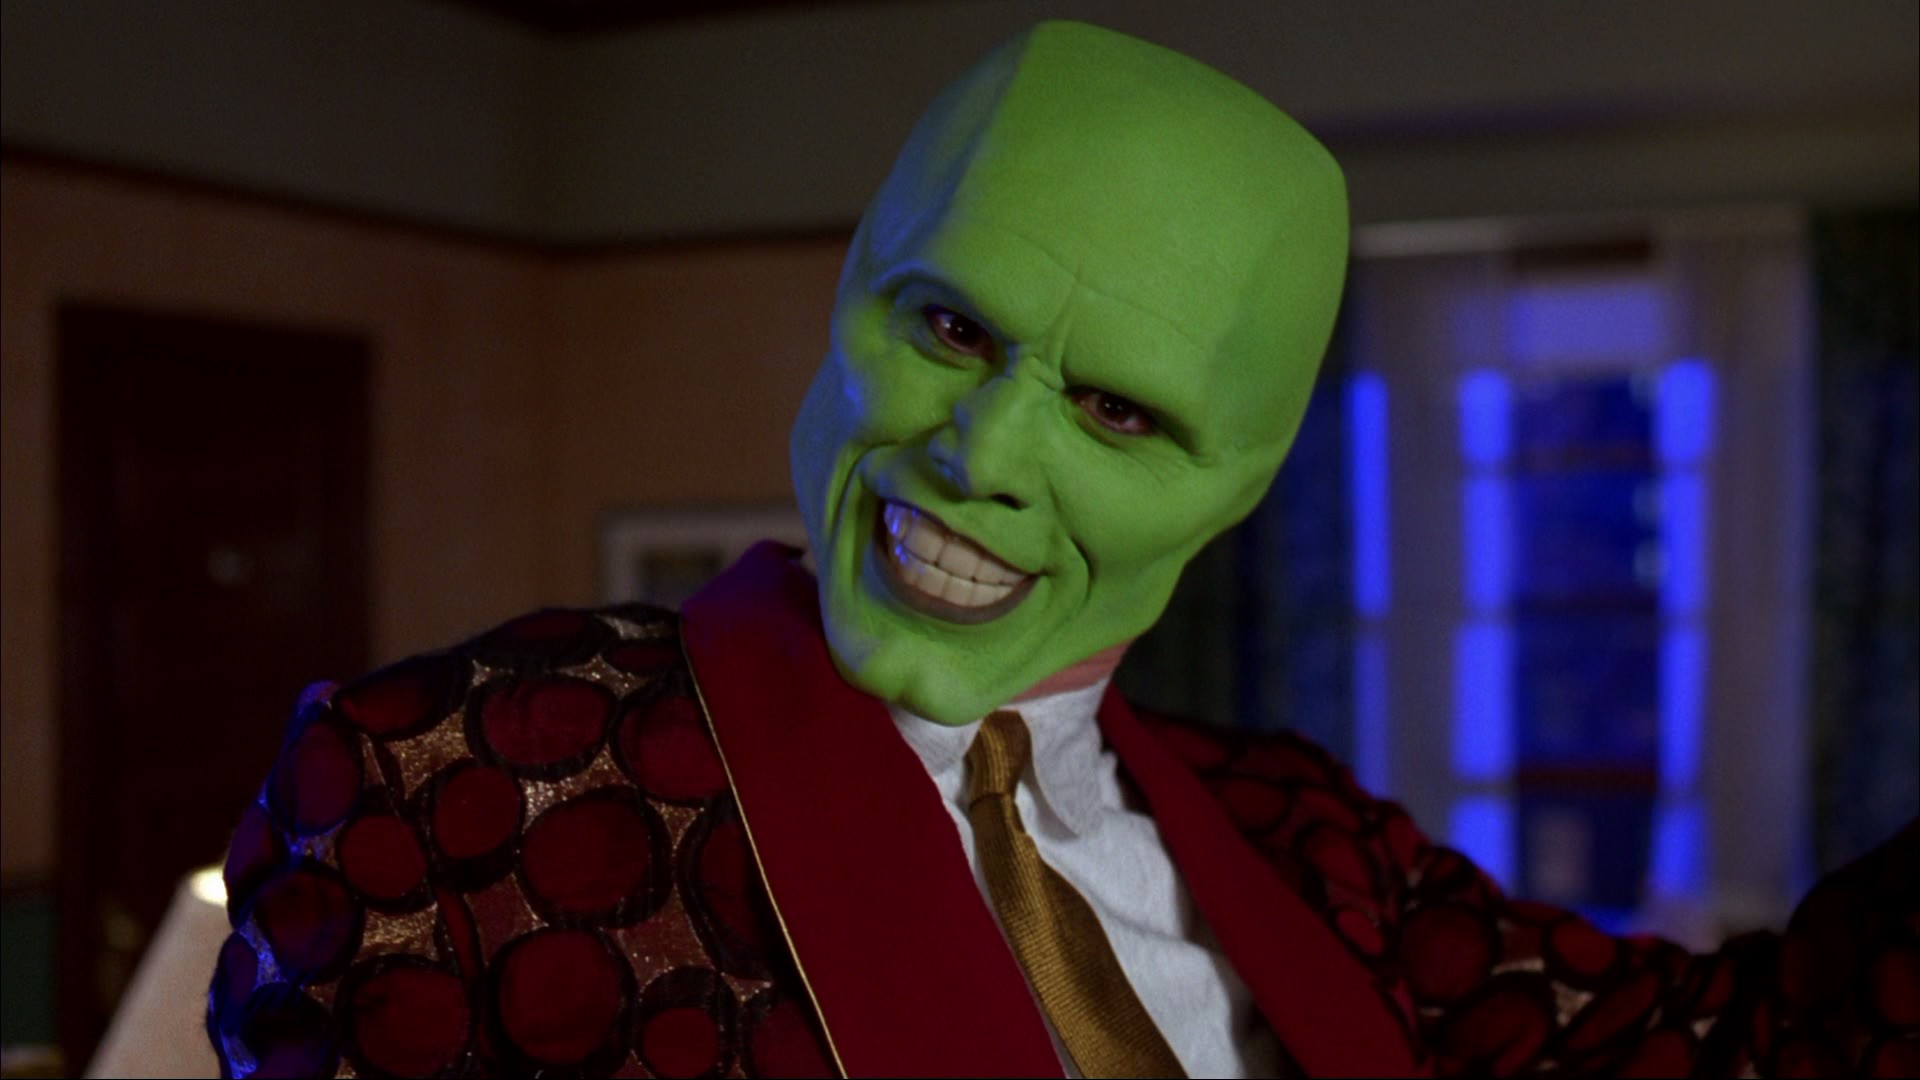 Jim Carrey in The Mask. Sourced from http://www.dvdbeaver.com